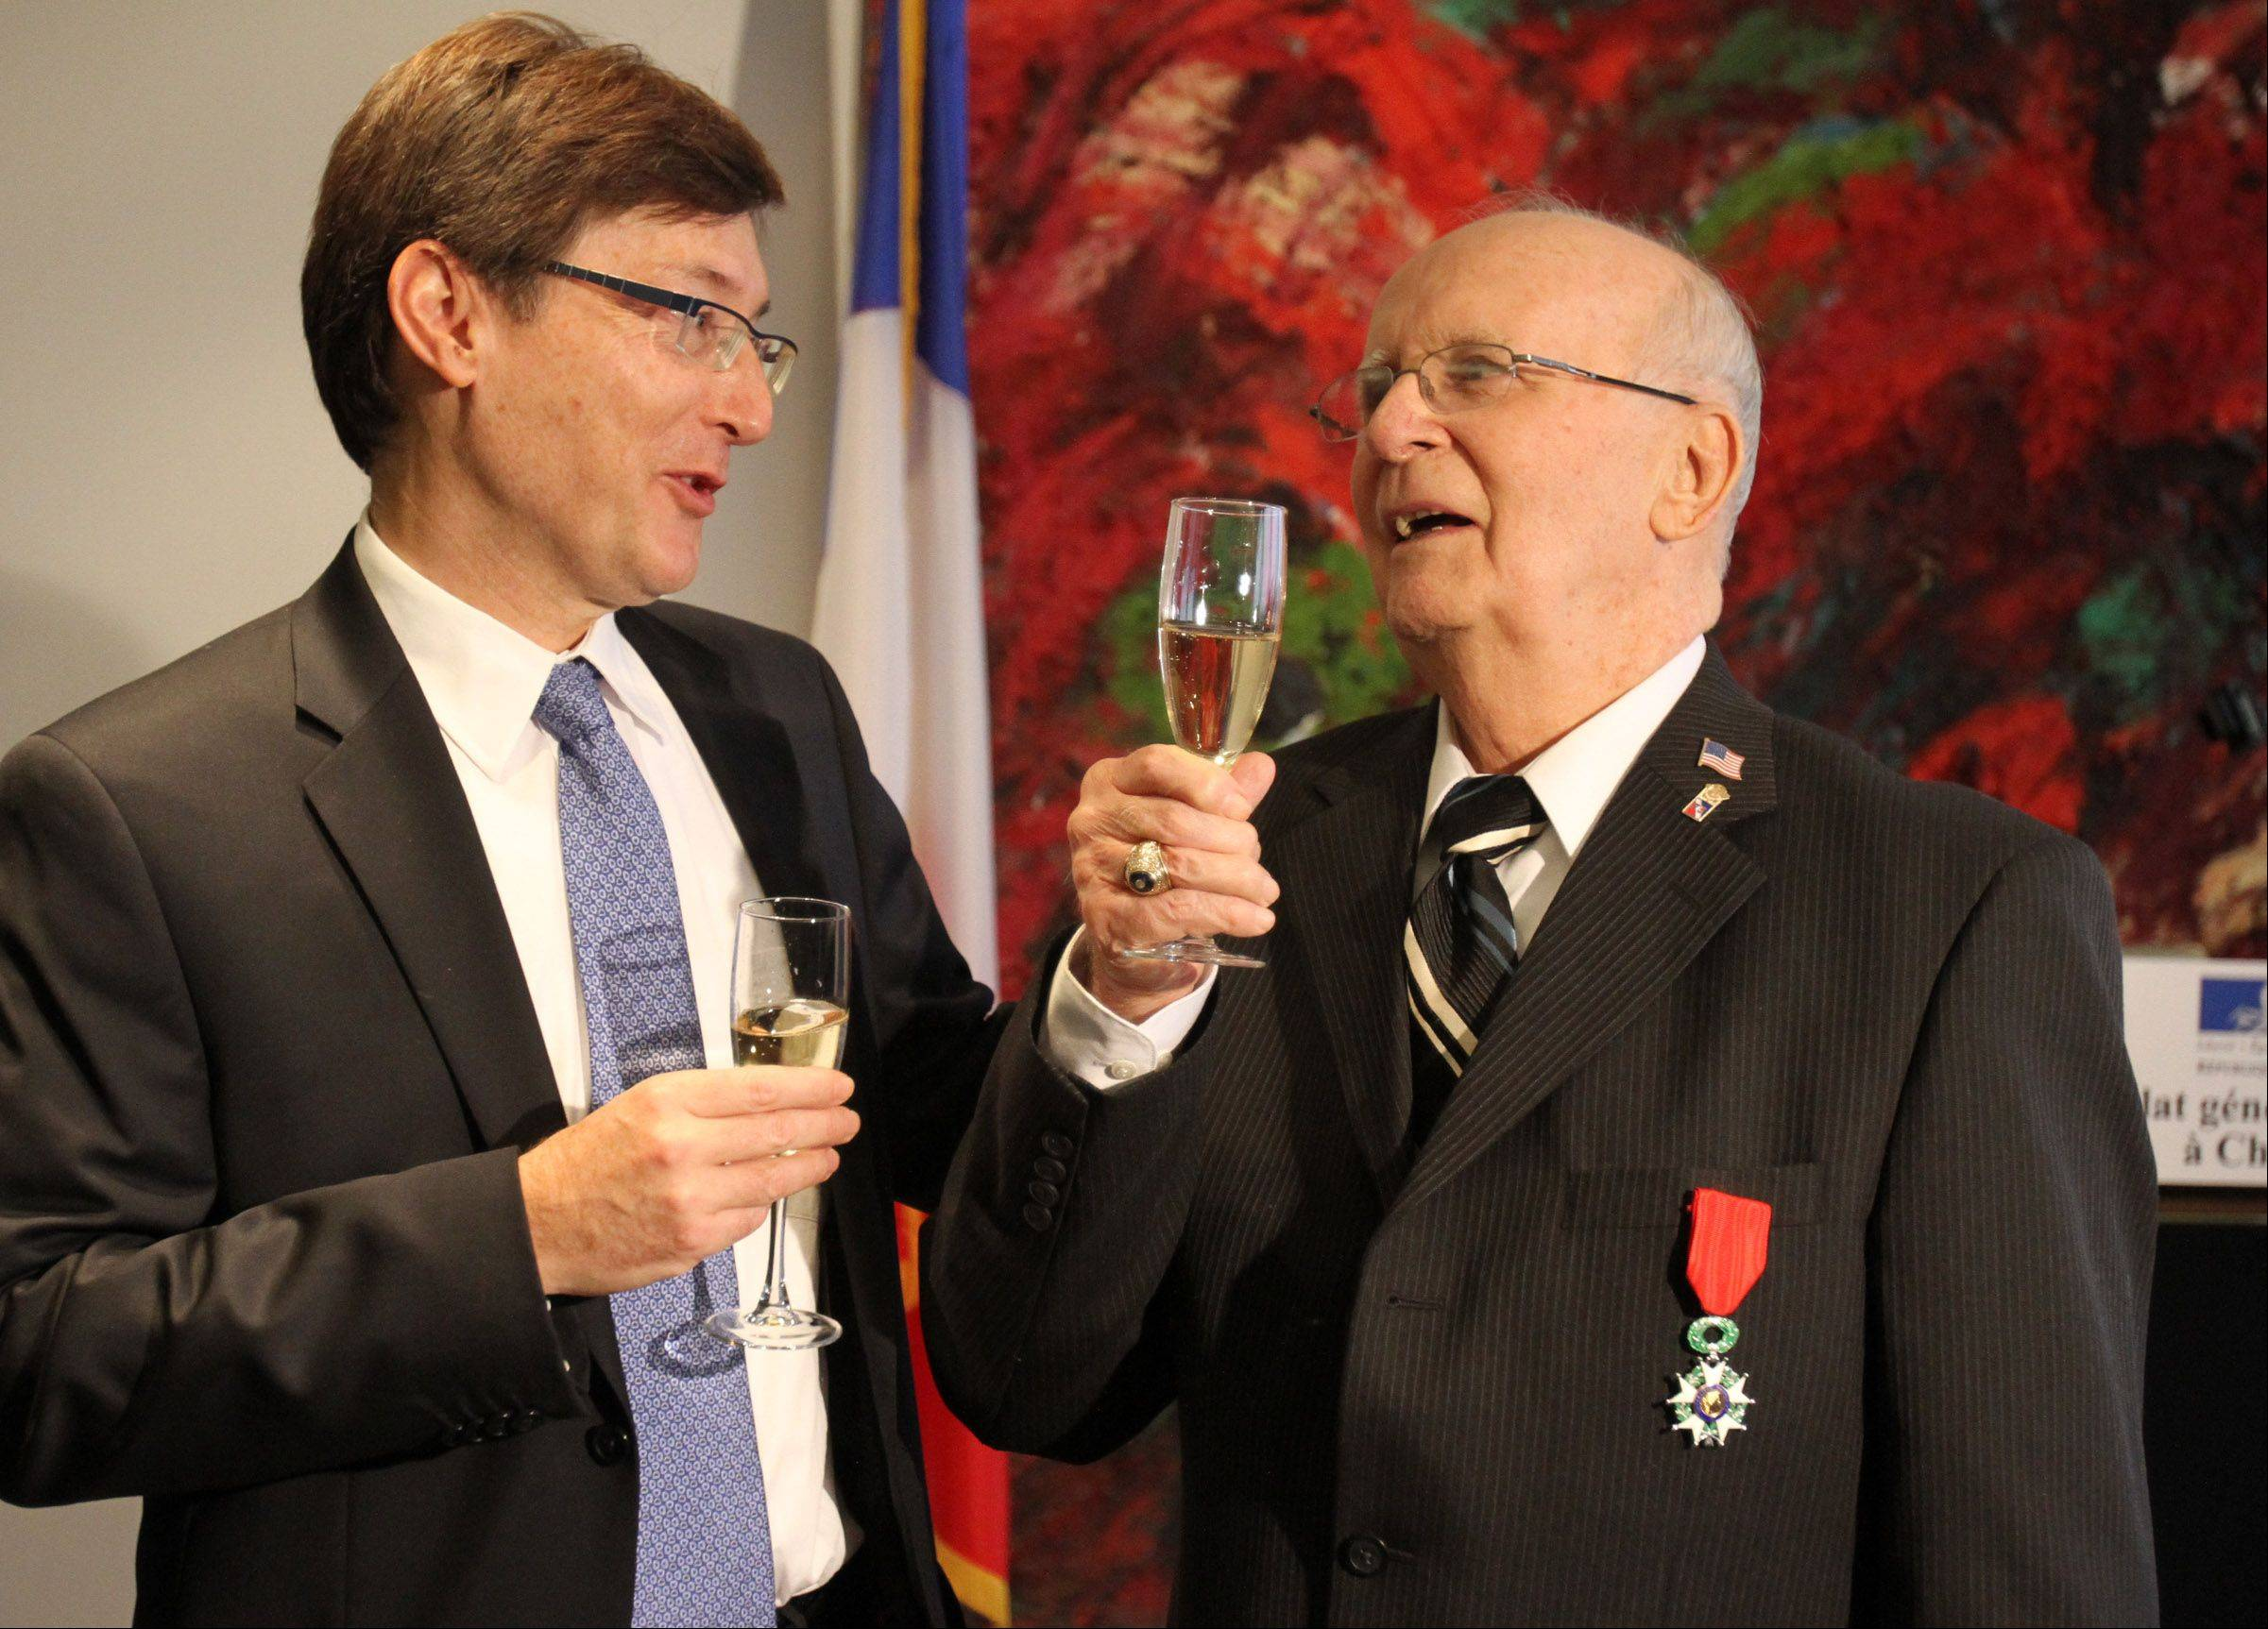 Jim Butz of Schaumburg and Consul Graham Paul hold a champagne toast after Paul presented Butz with the Legion of Honor medal at the Consulate General of France in Chicago on Friday.